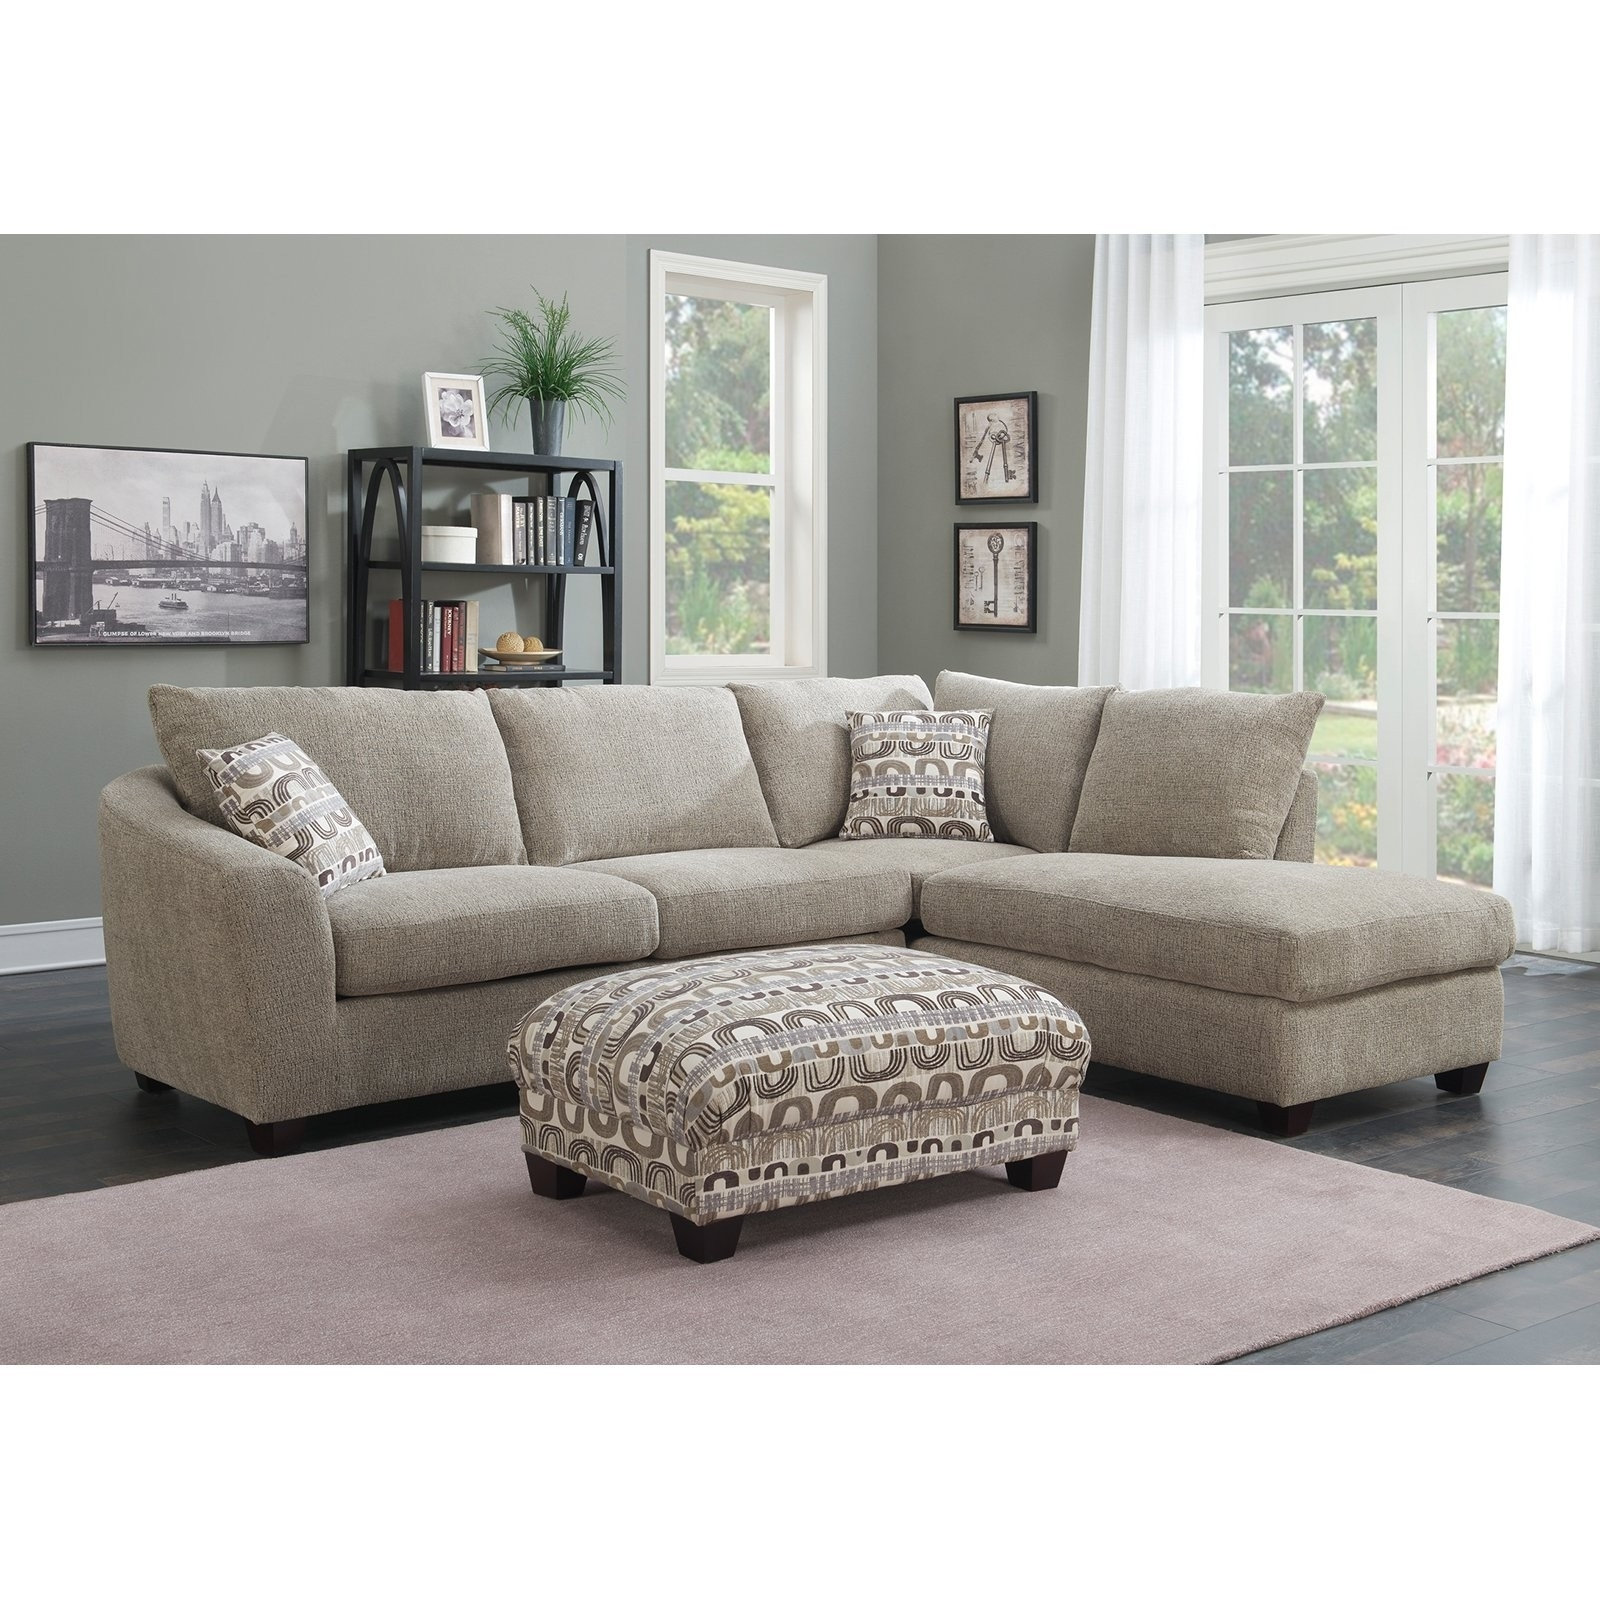 2 Piece Sectional With Chaise Delano W Laf Oversized Living Spaces Within Delano 2 Piece Sectionals With Laf Oversized Chaise (Image 1 of 25)